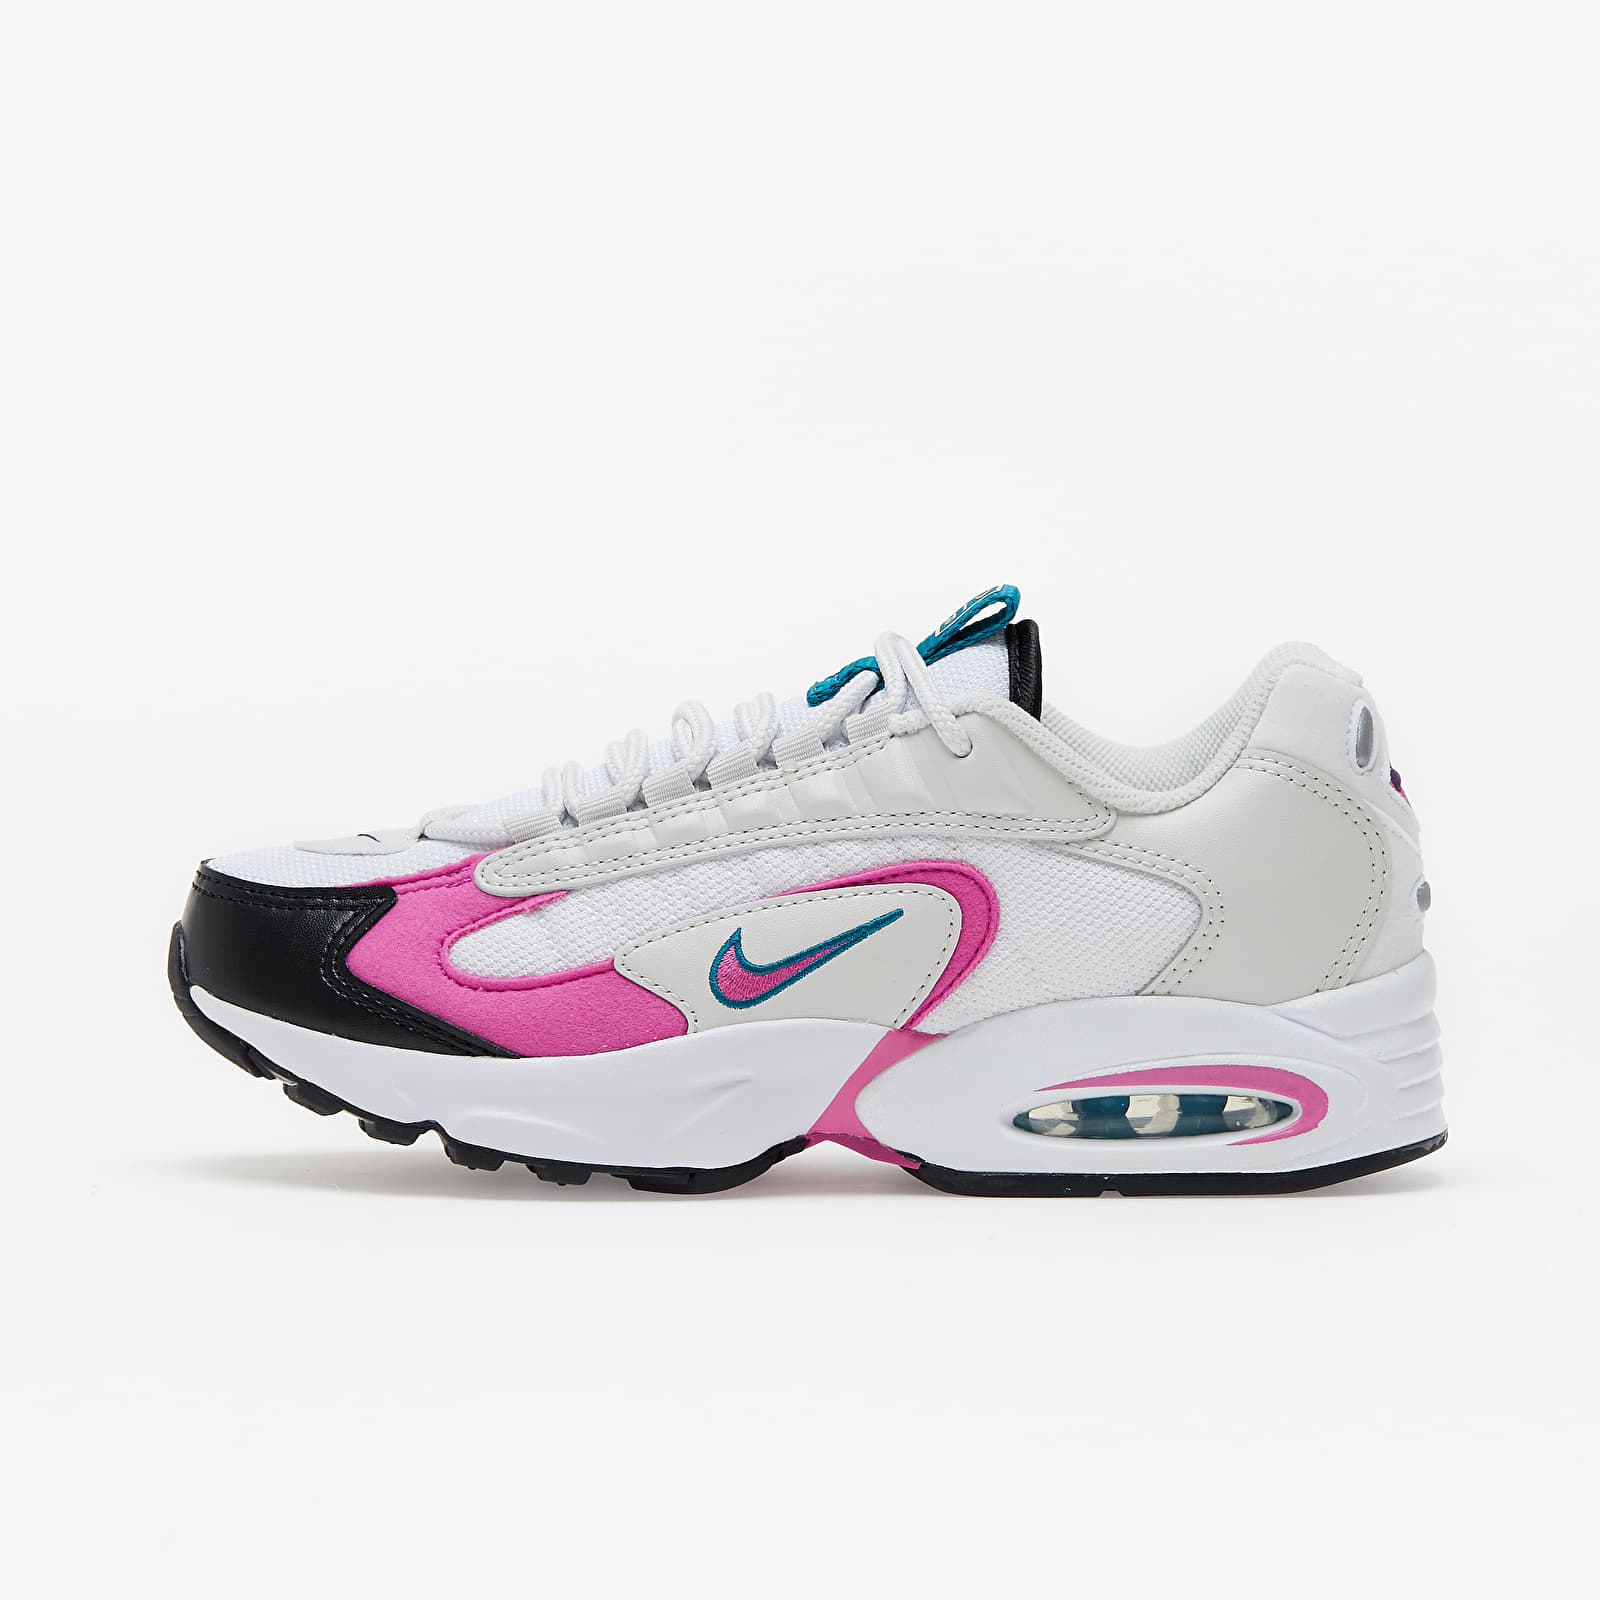 Nike W Air Max Triax White/ Active Fuchsia-Bright Spruce EUR 38.5